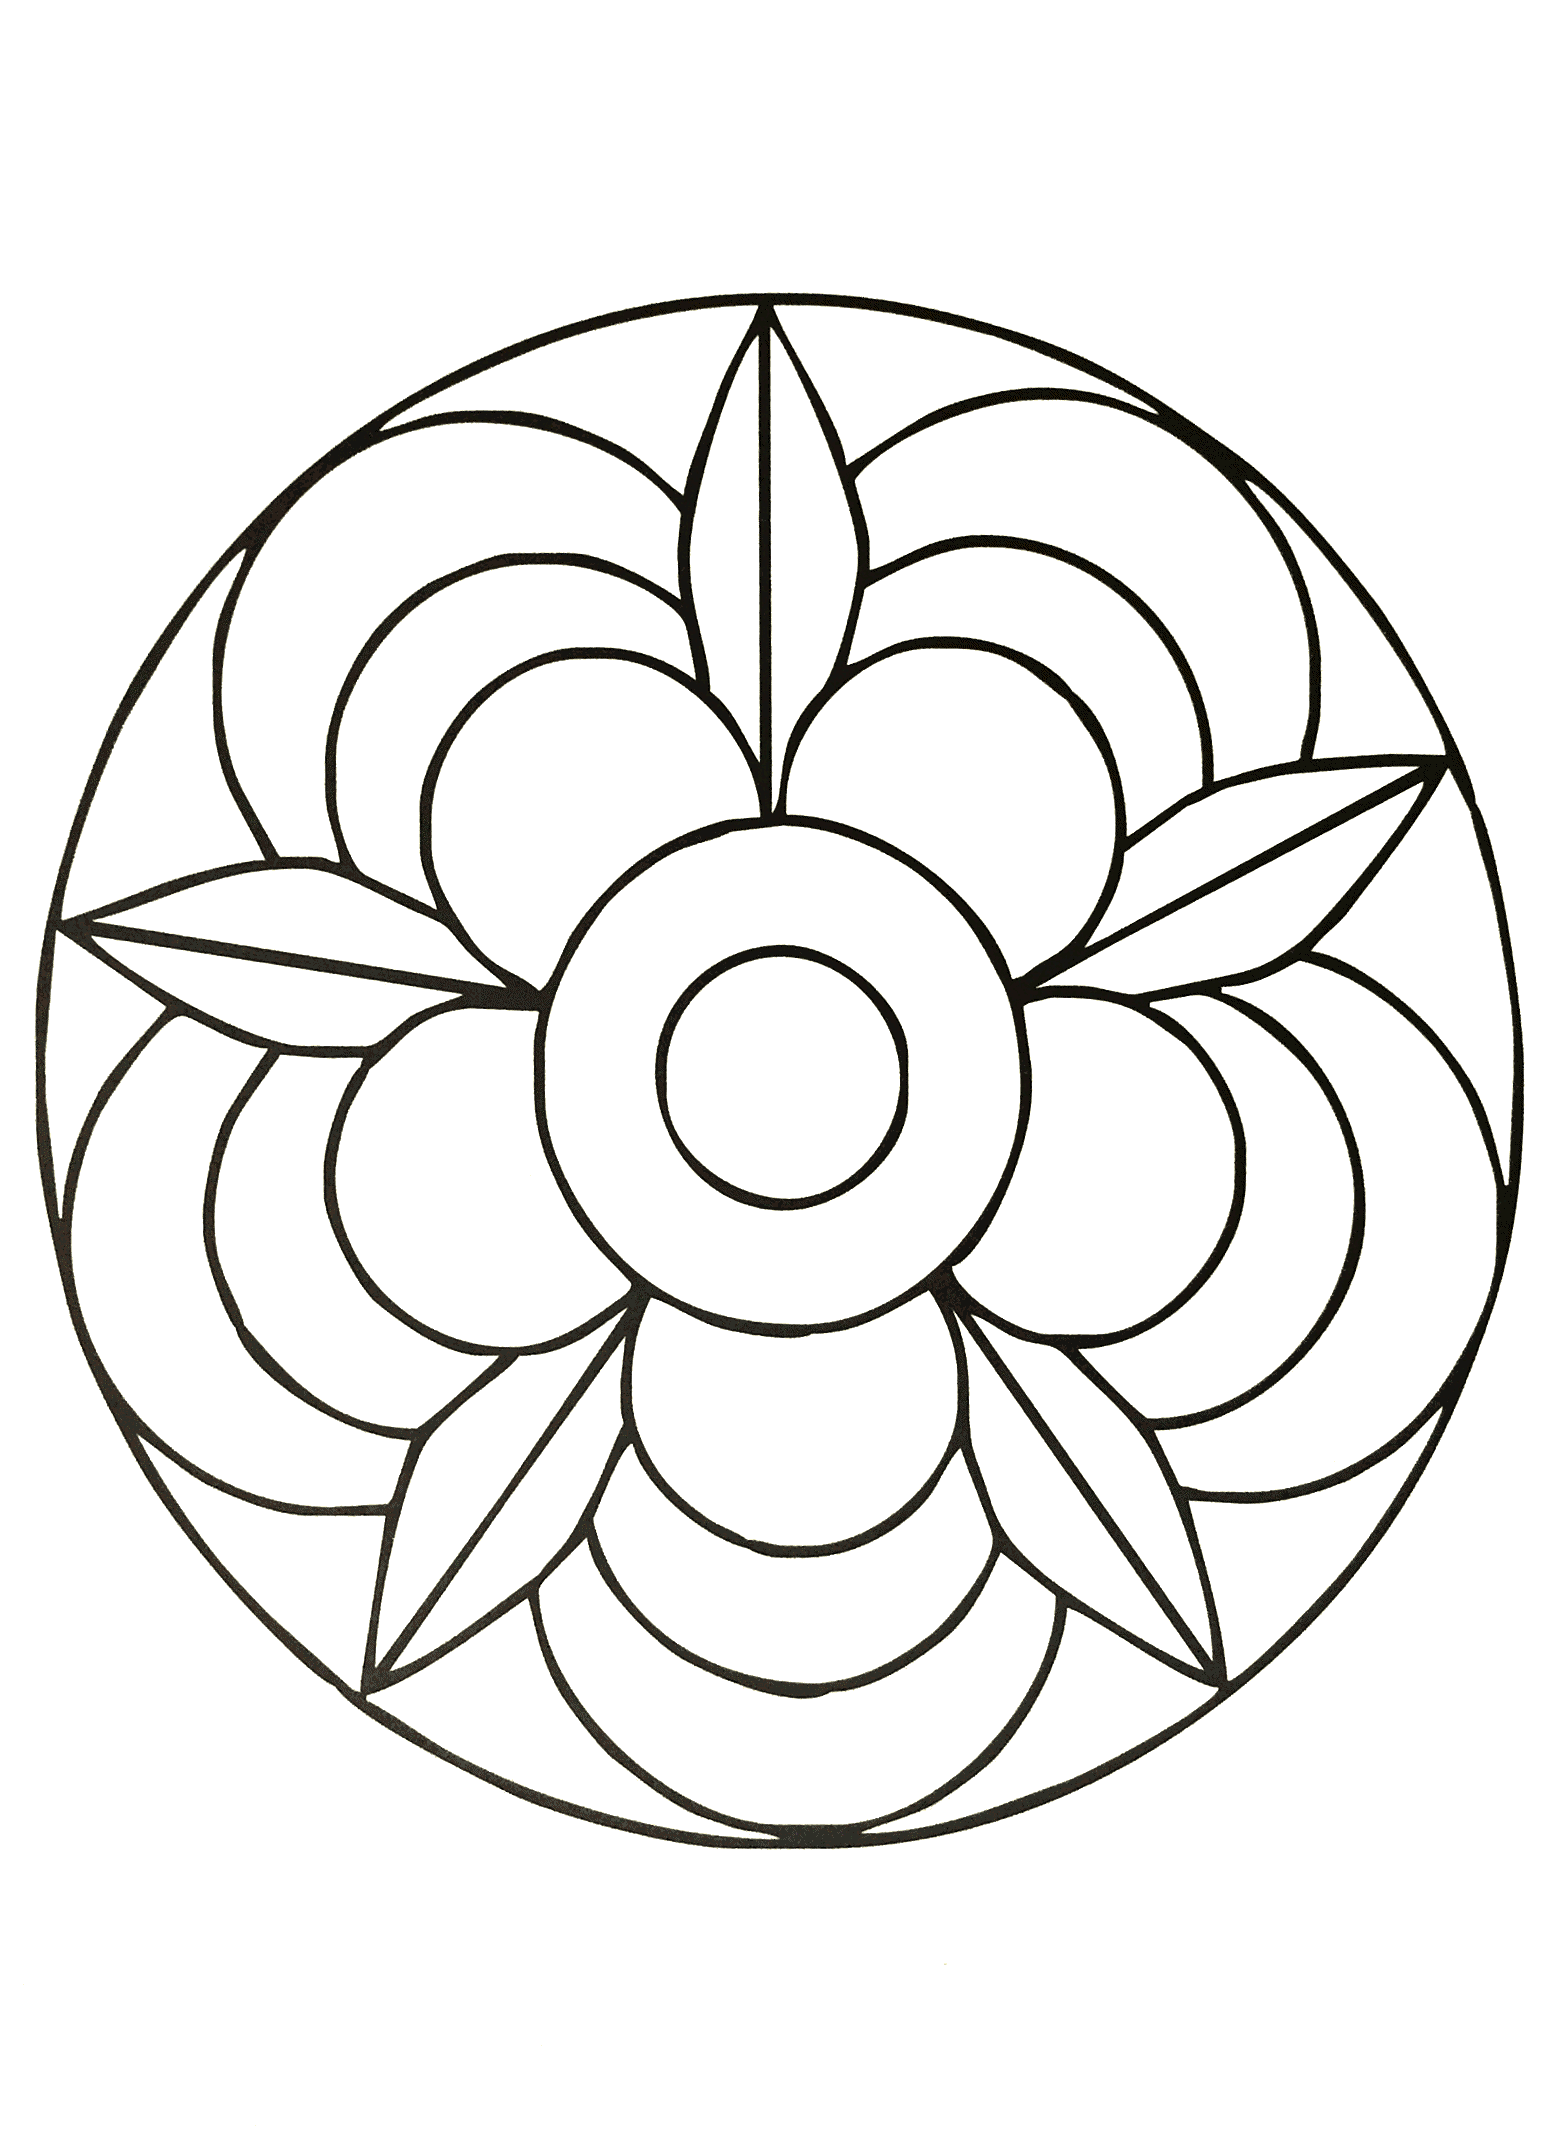 Simple mandala 40 Mandalas Coloring pages for kids